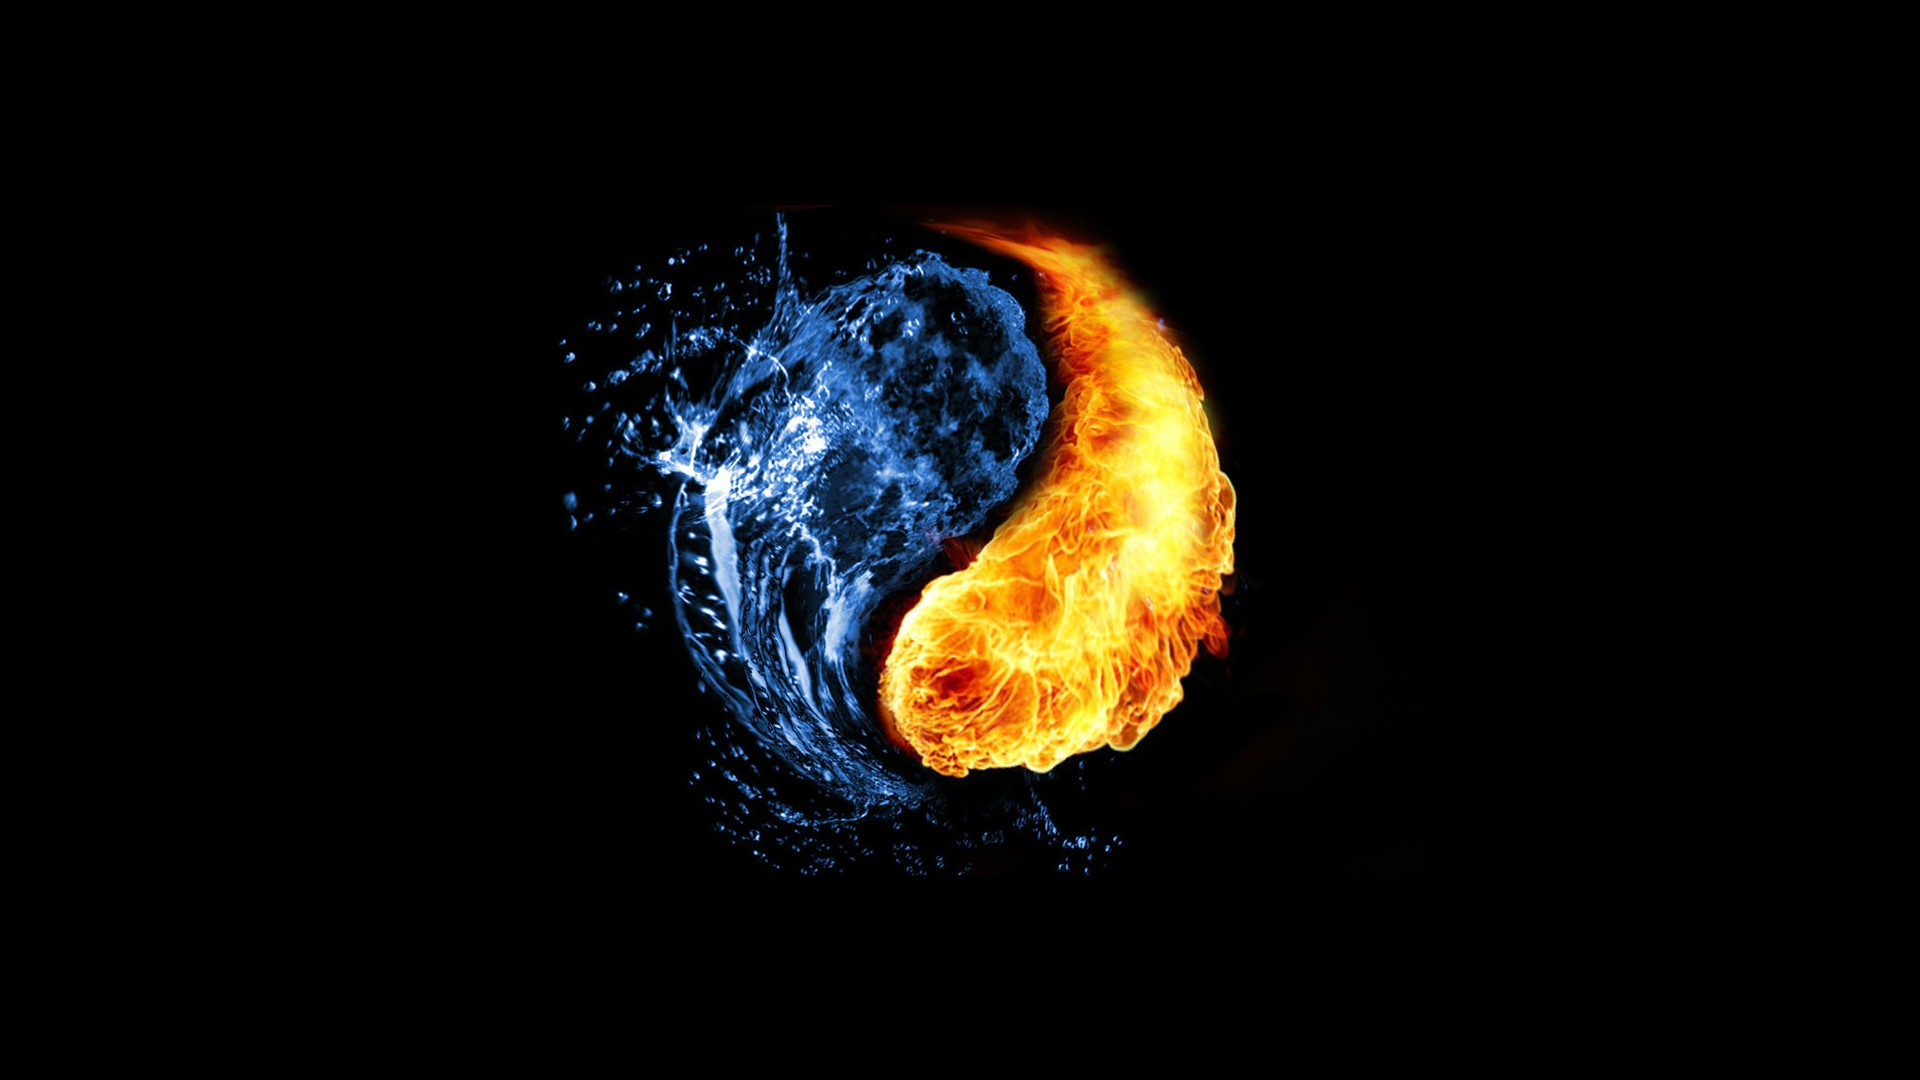 Abstract Flames Fire And Water